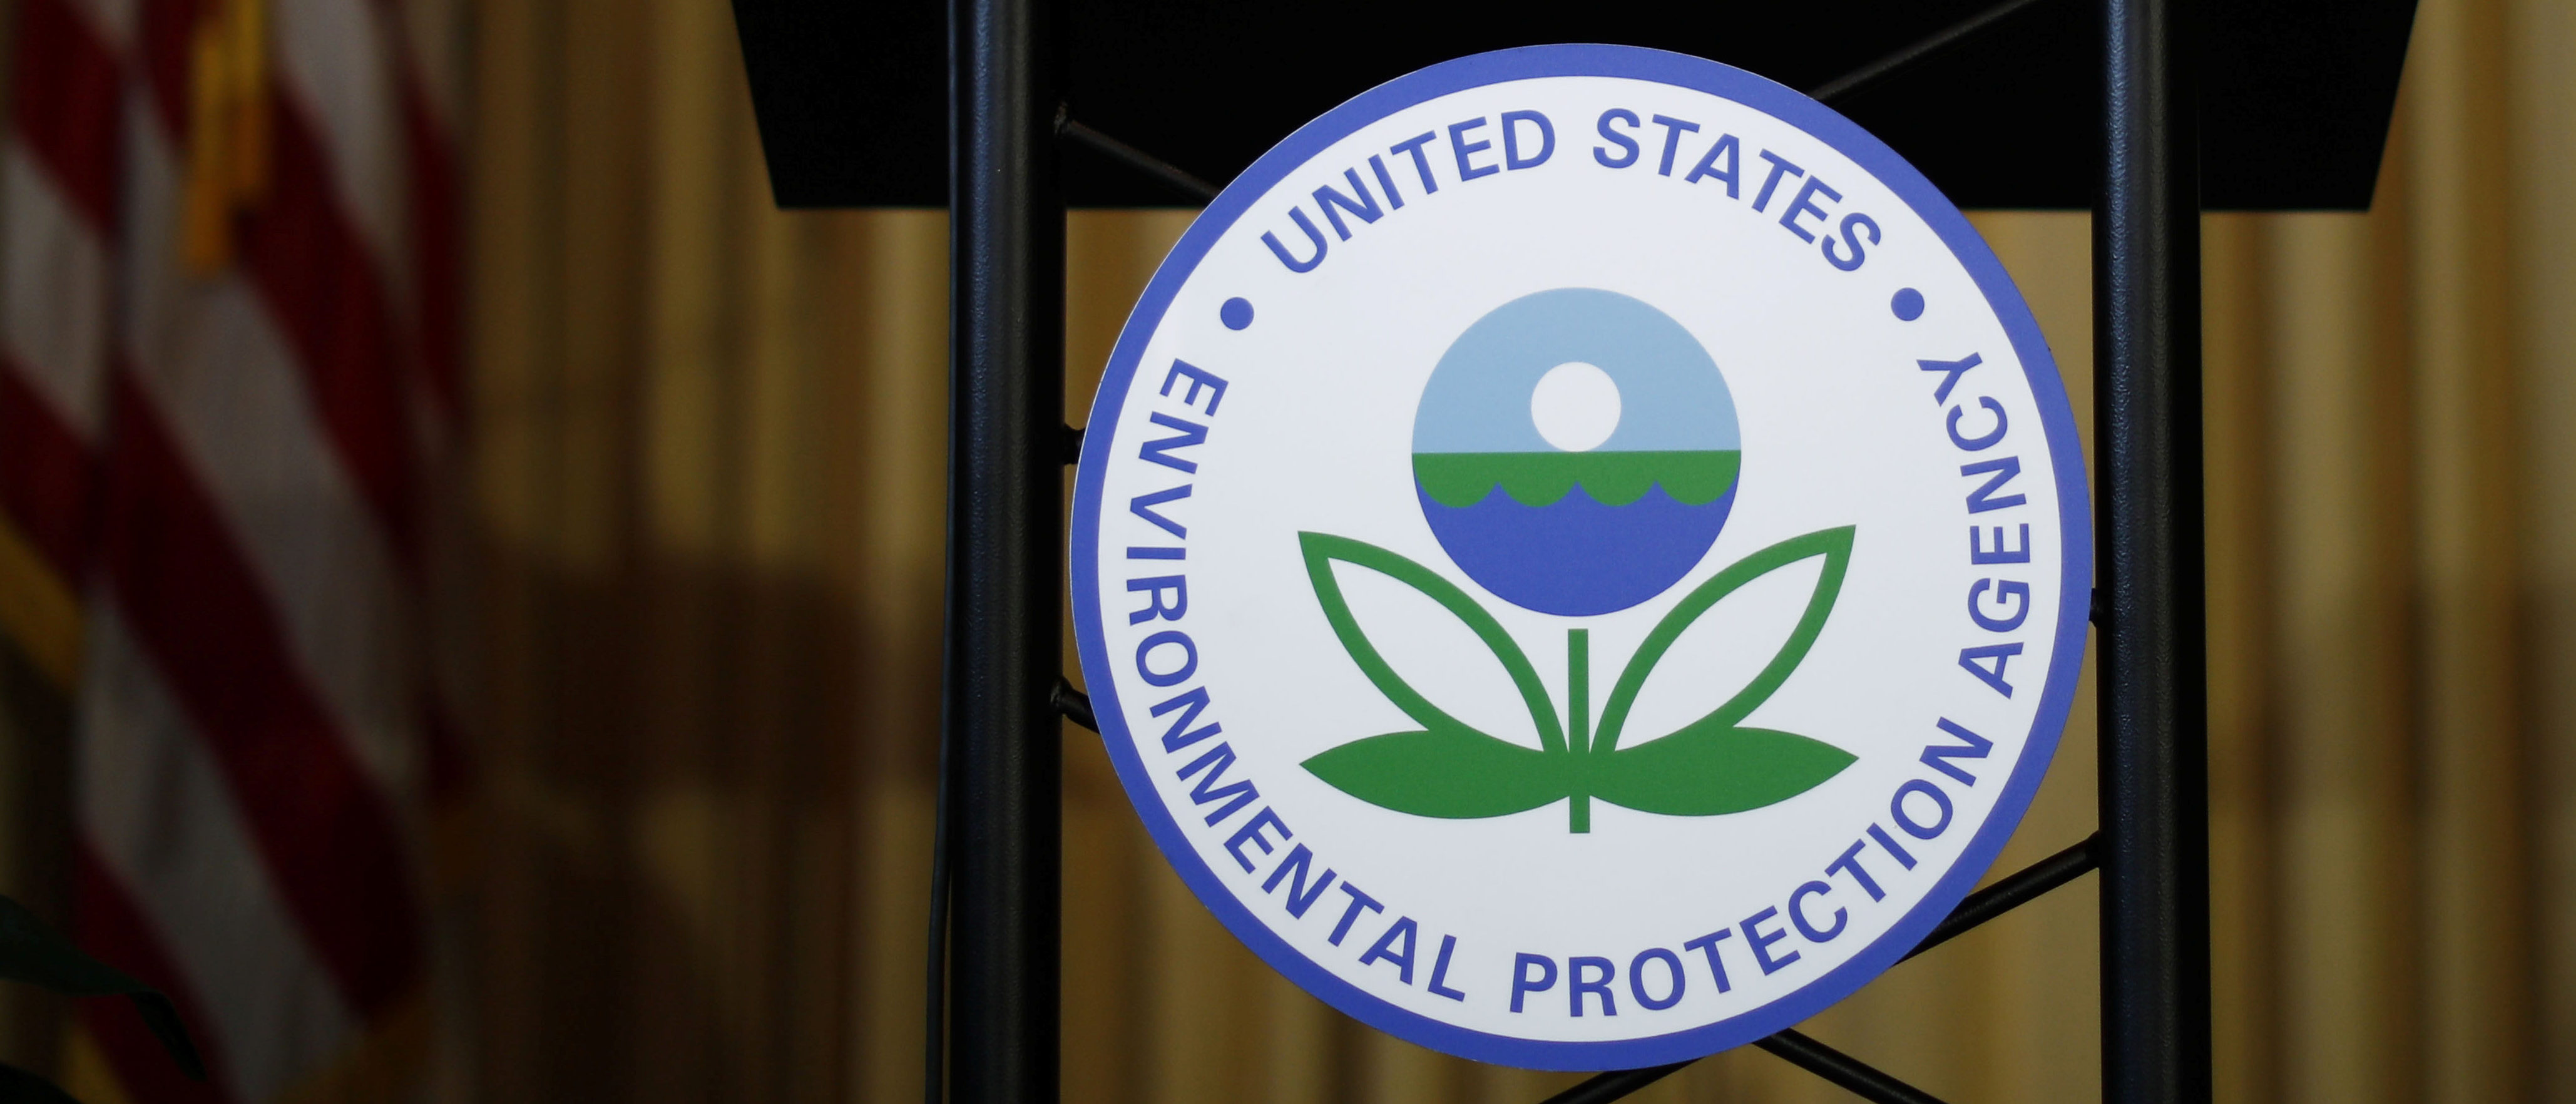 An empty podium awaits the arrival of U.S. Environmental Protection Agency (EPA) Acting Administrator Andrew Wheeler to address staff at EPA headquarters in Washington, U.S., July 11, 2018. REUTERS/Ting Shen.